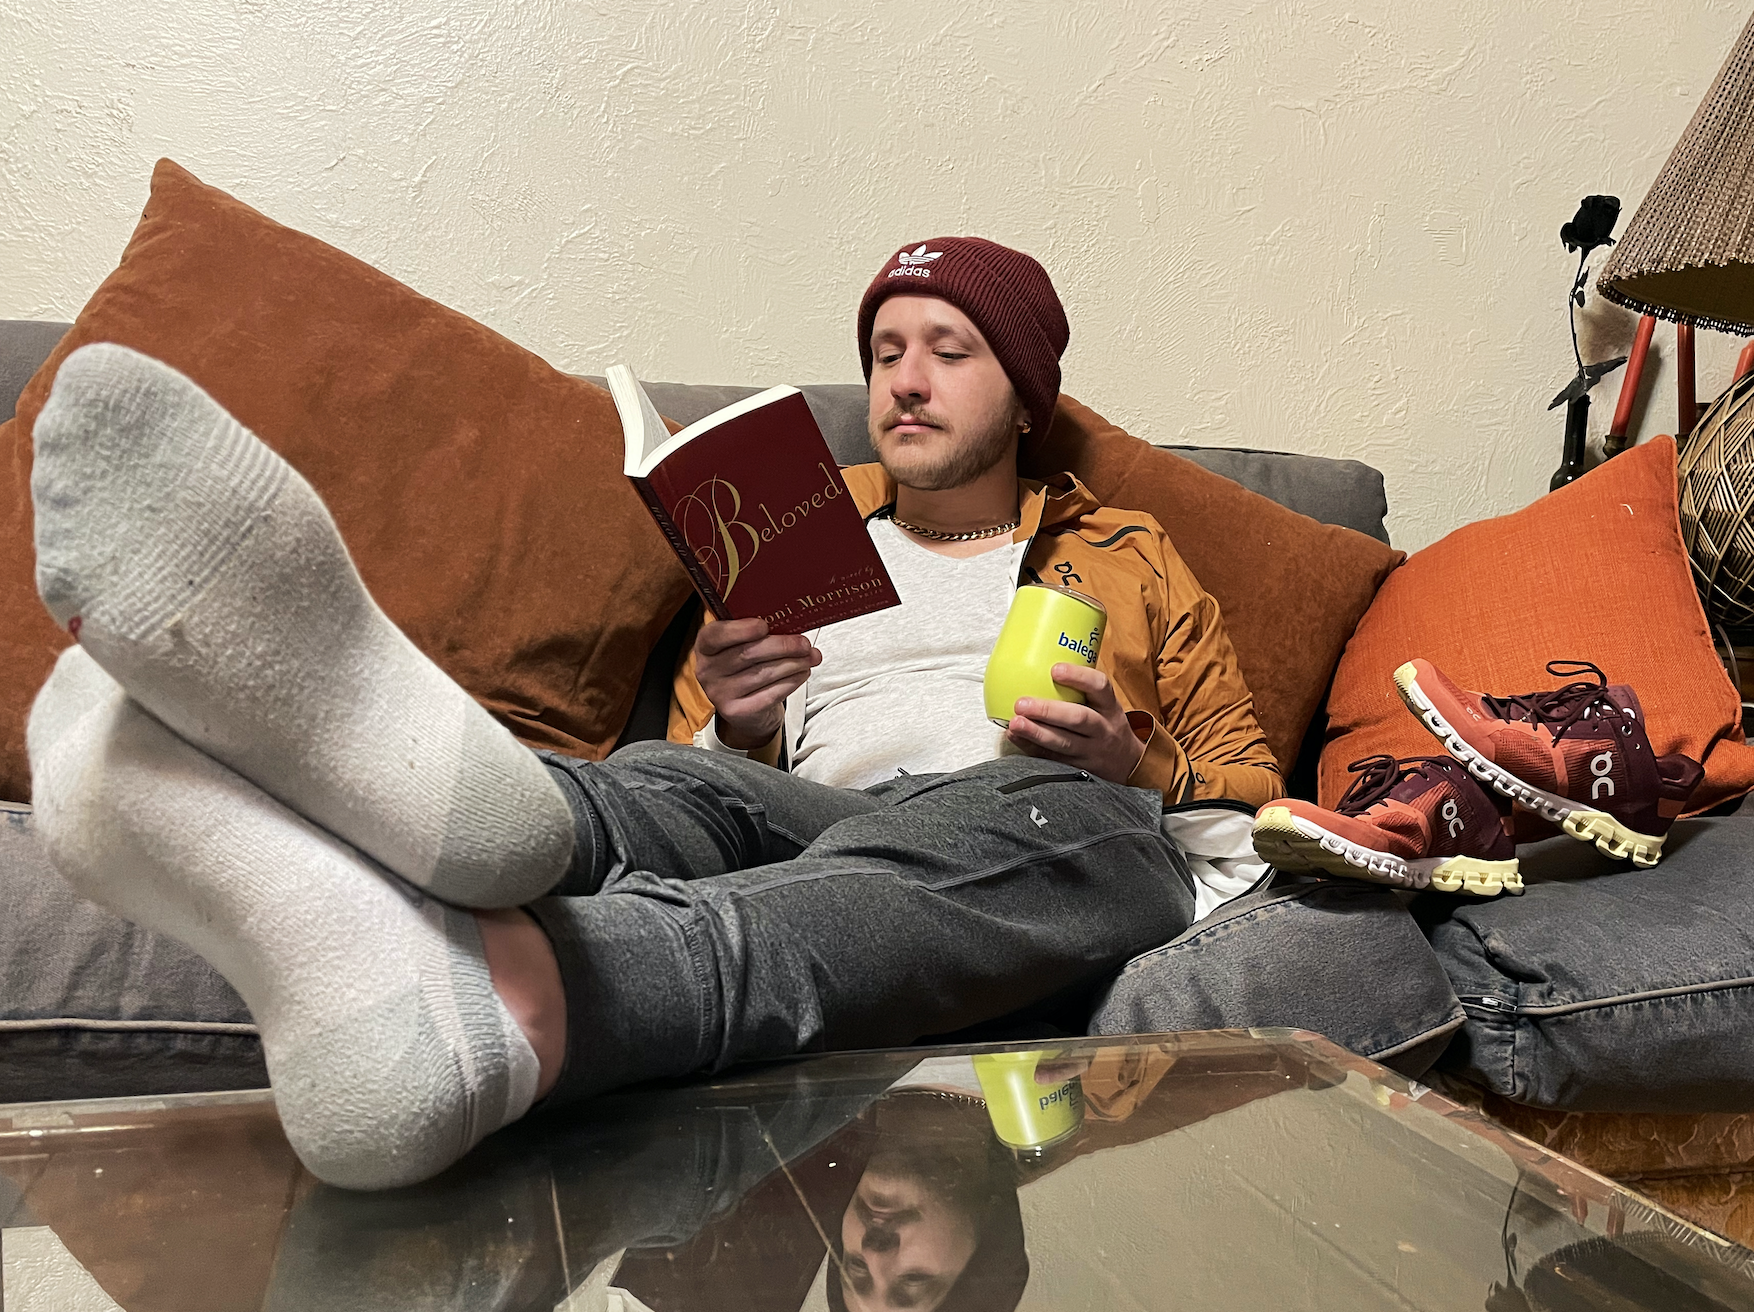 man lounging on a couch with his feet propped on a table reading a book with his shoes sitting next to him